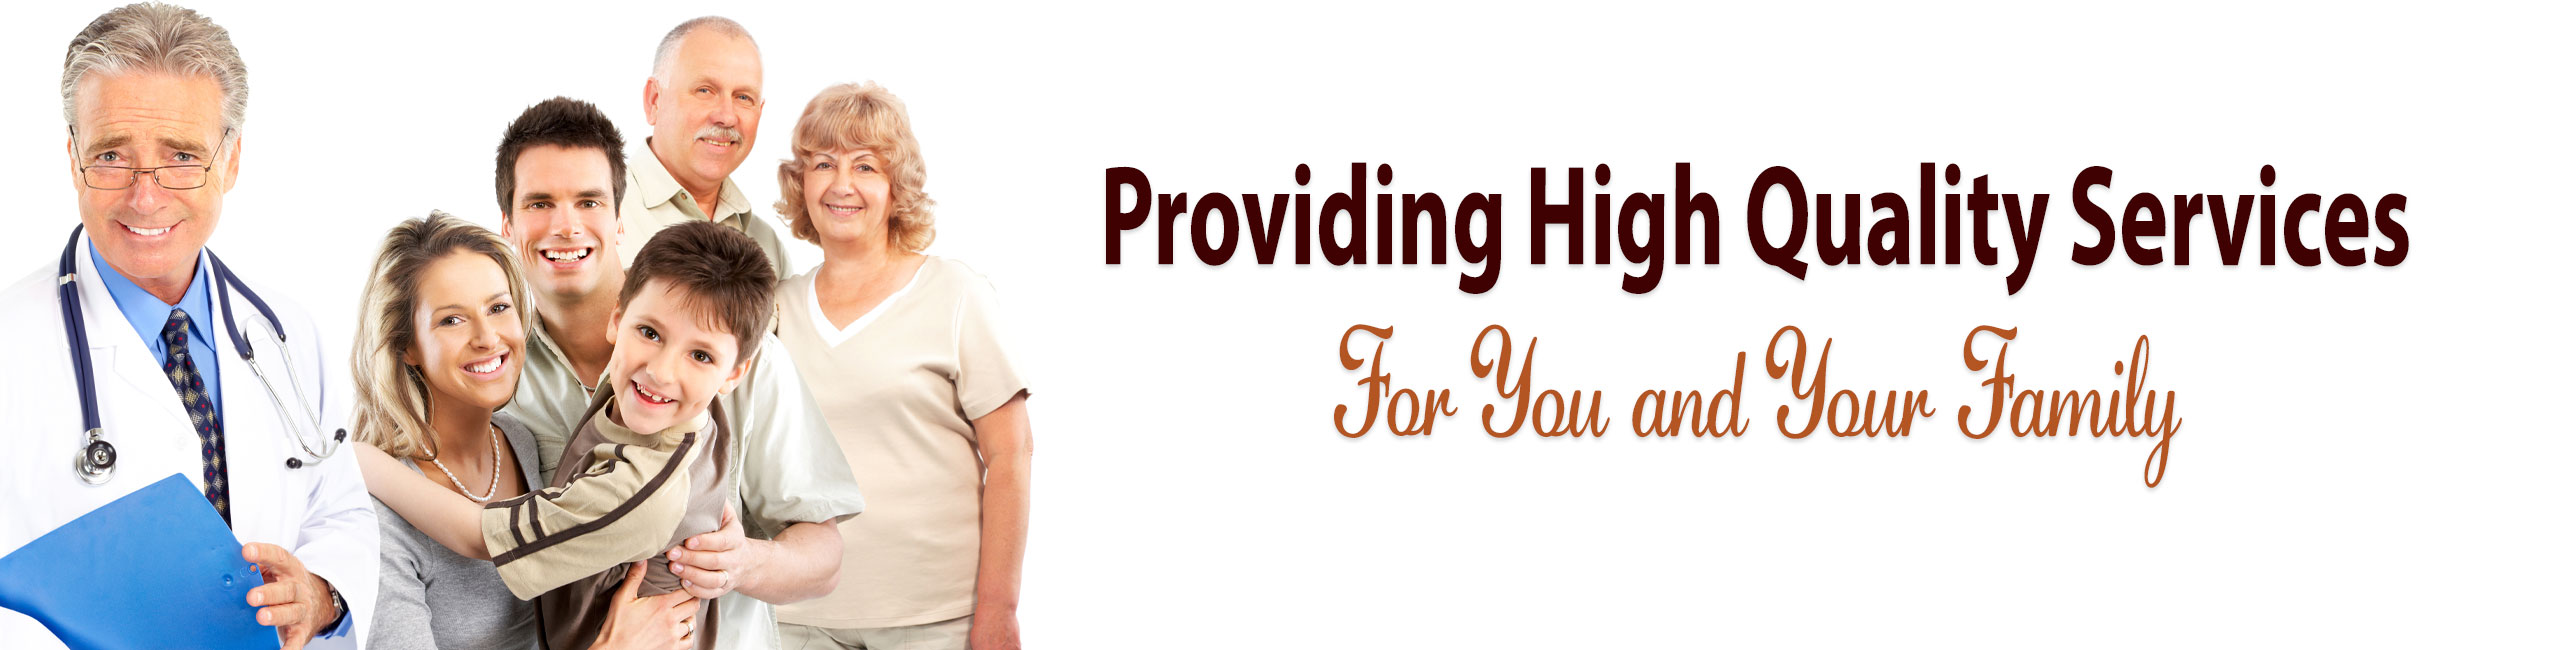 The Banner shows a smiling doctor wearing glasses holding a folder in front of a happy family. The family includes one son, his parents and his grandparents all smiling.  The Banner reads Providing High Quality Services  For You and Your Family